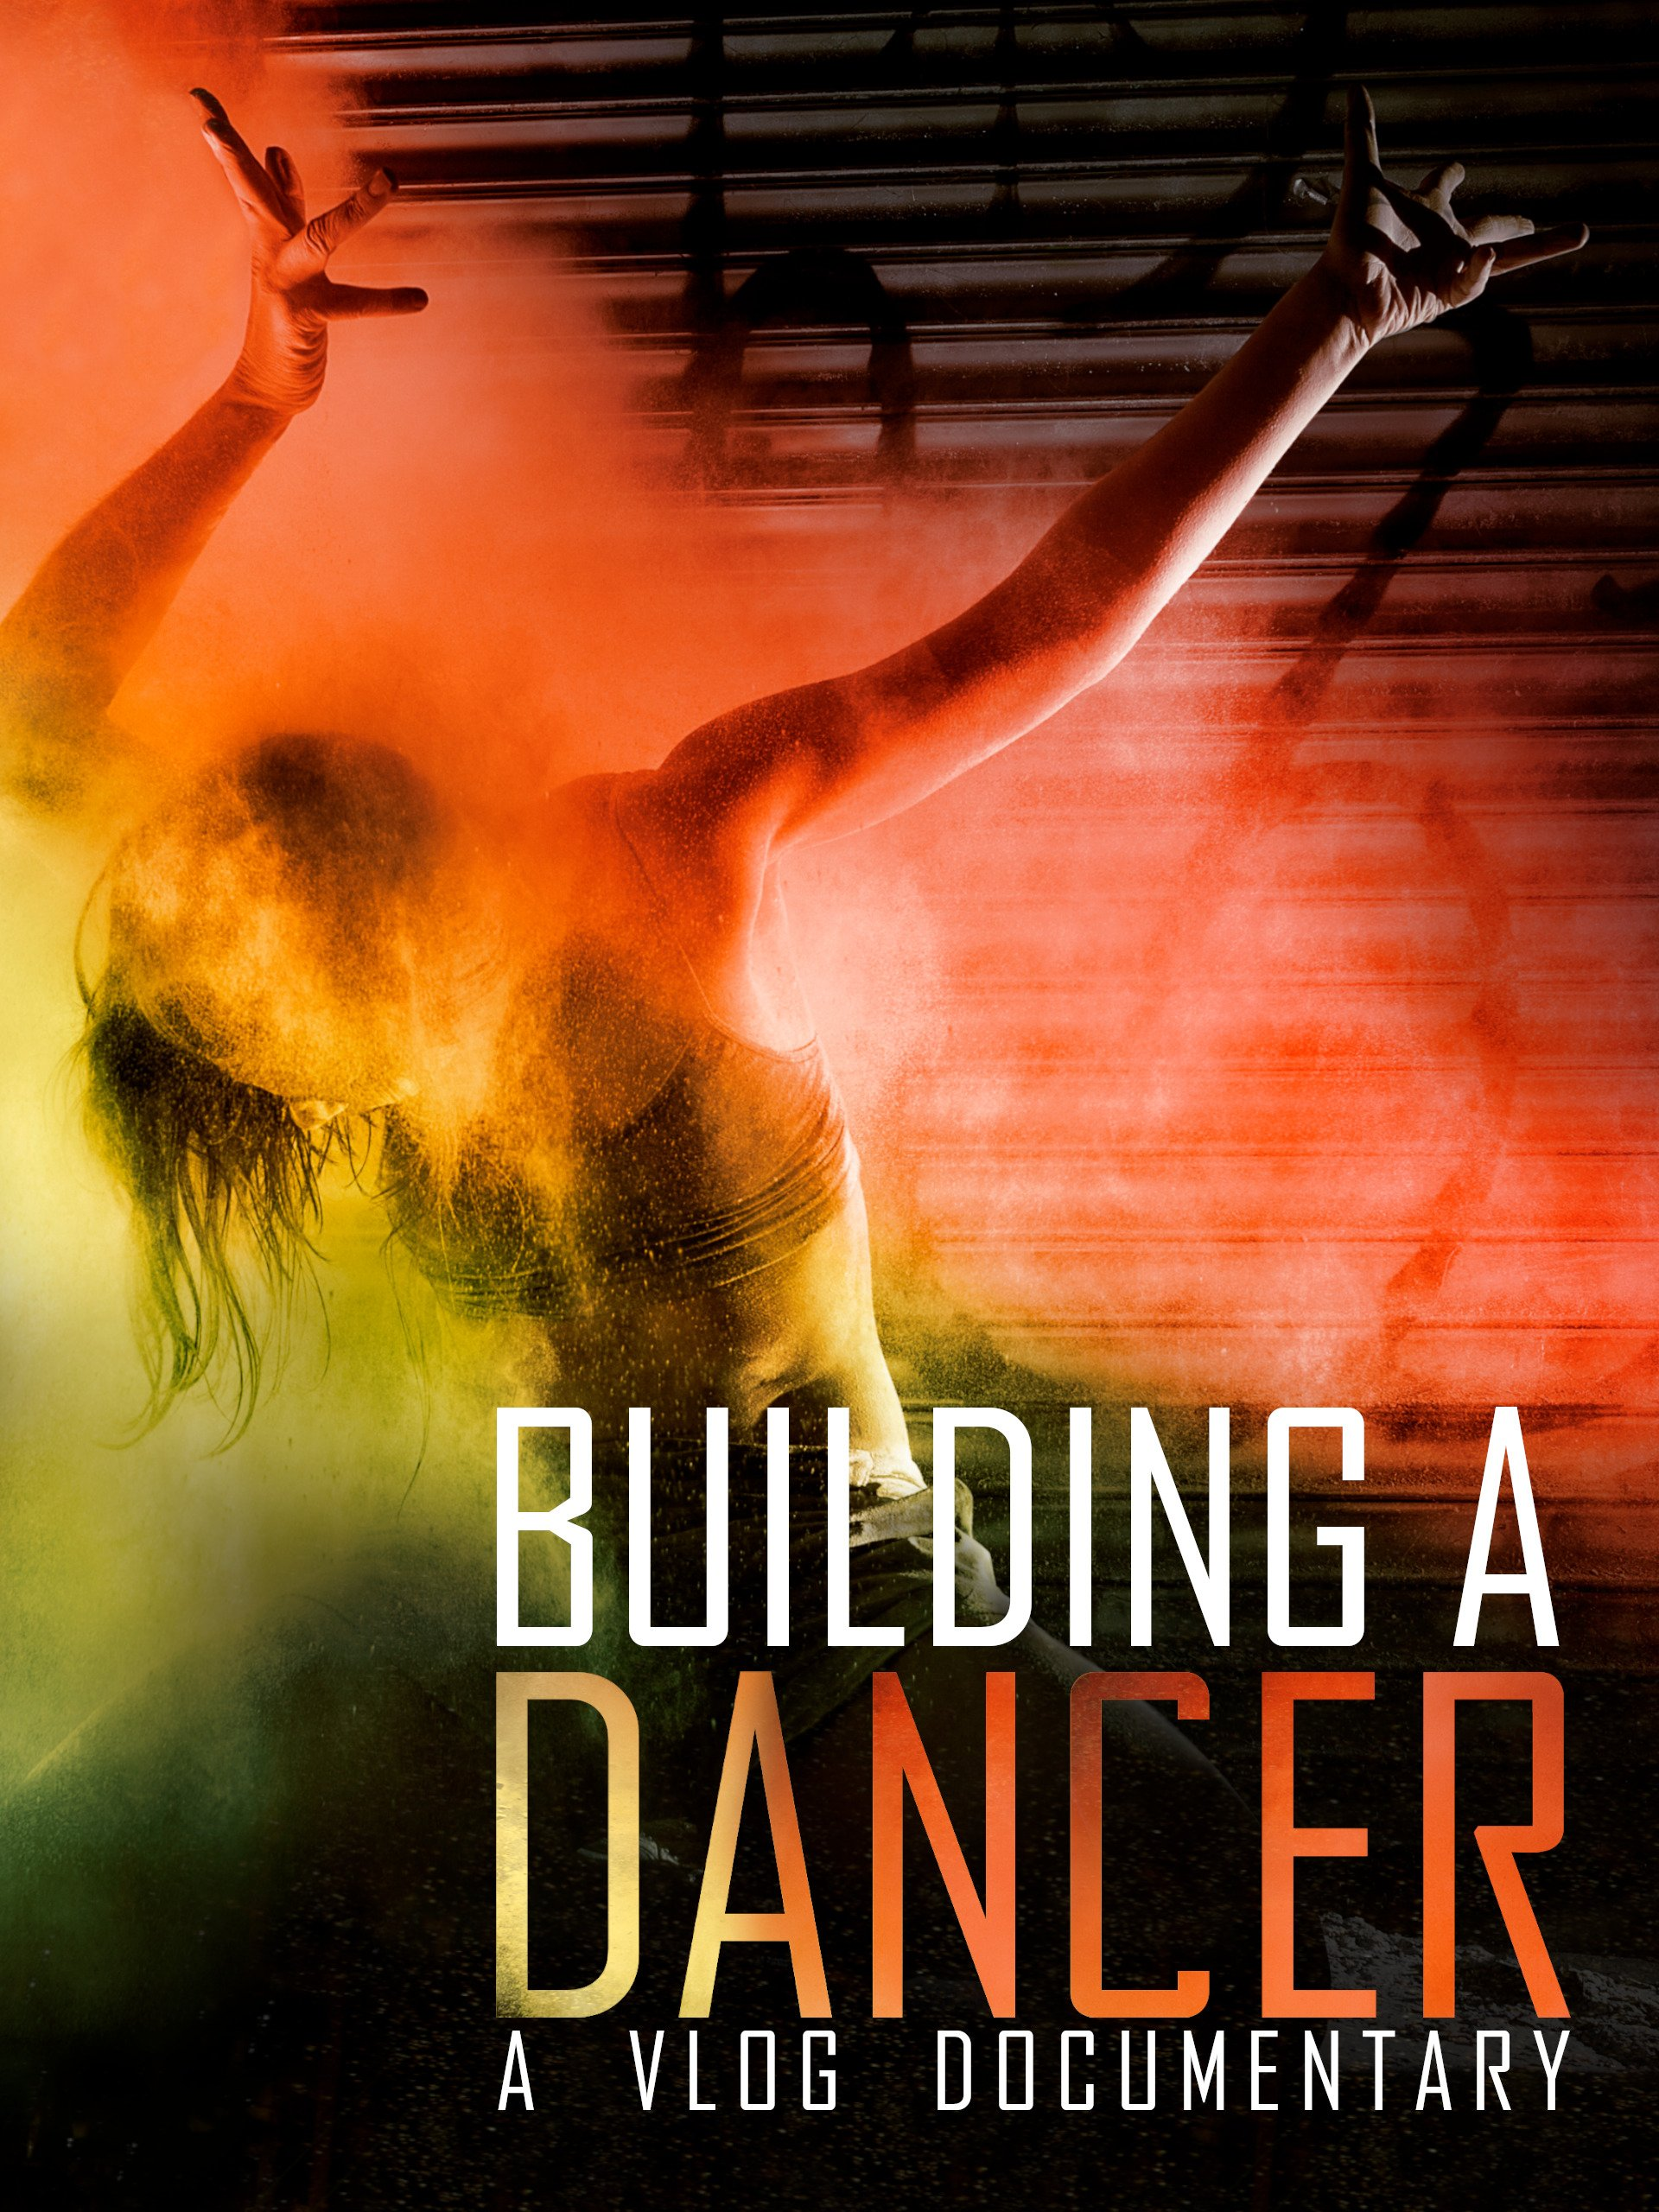 Building A Dancer